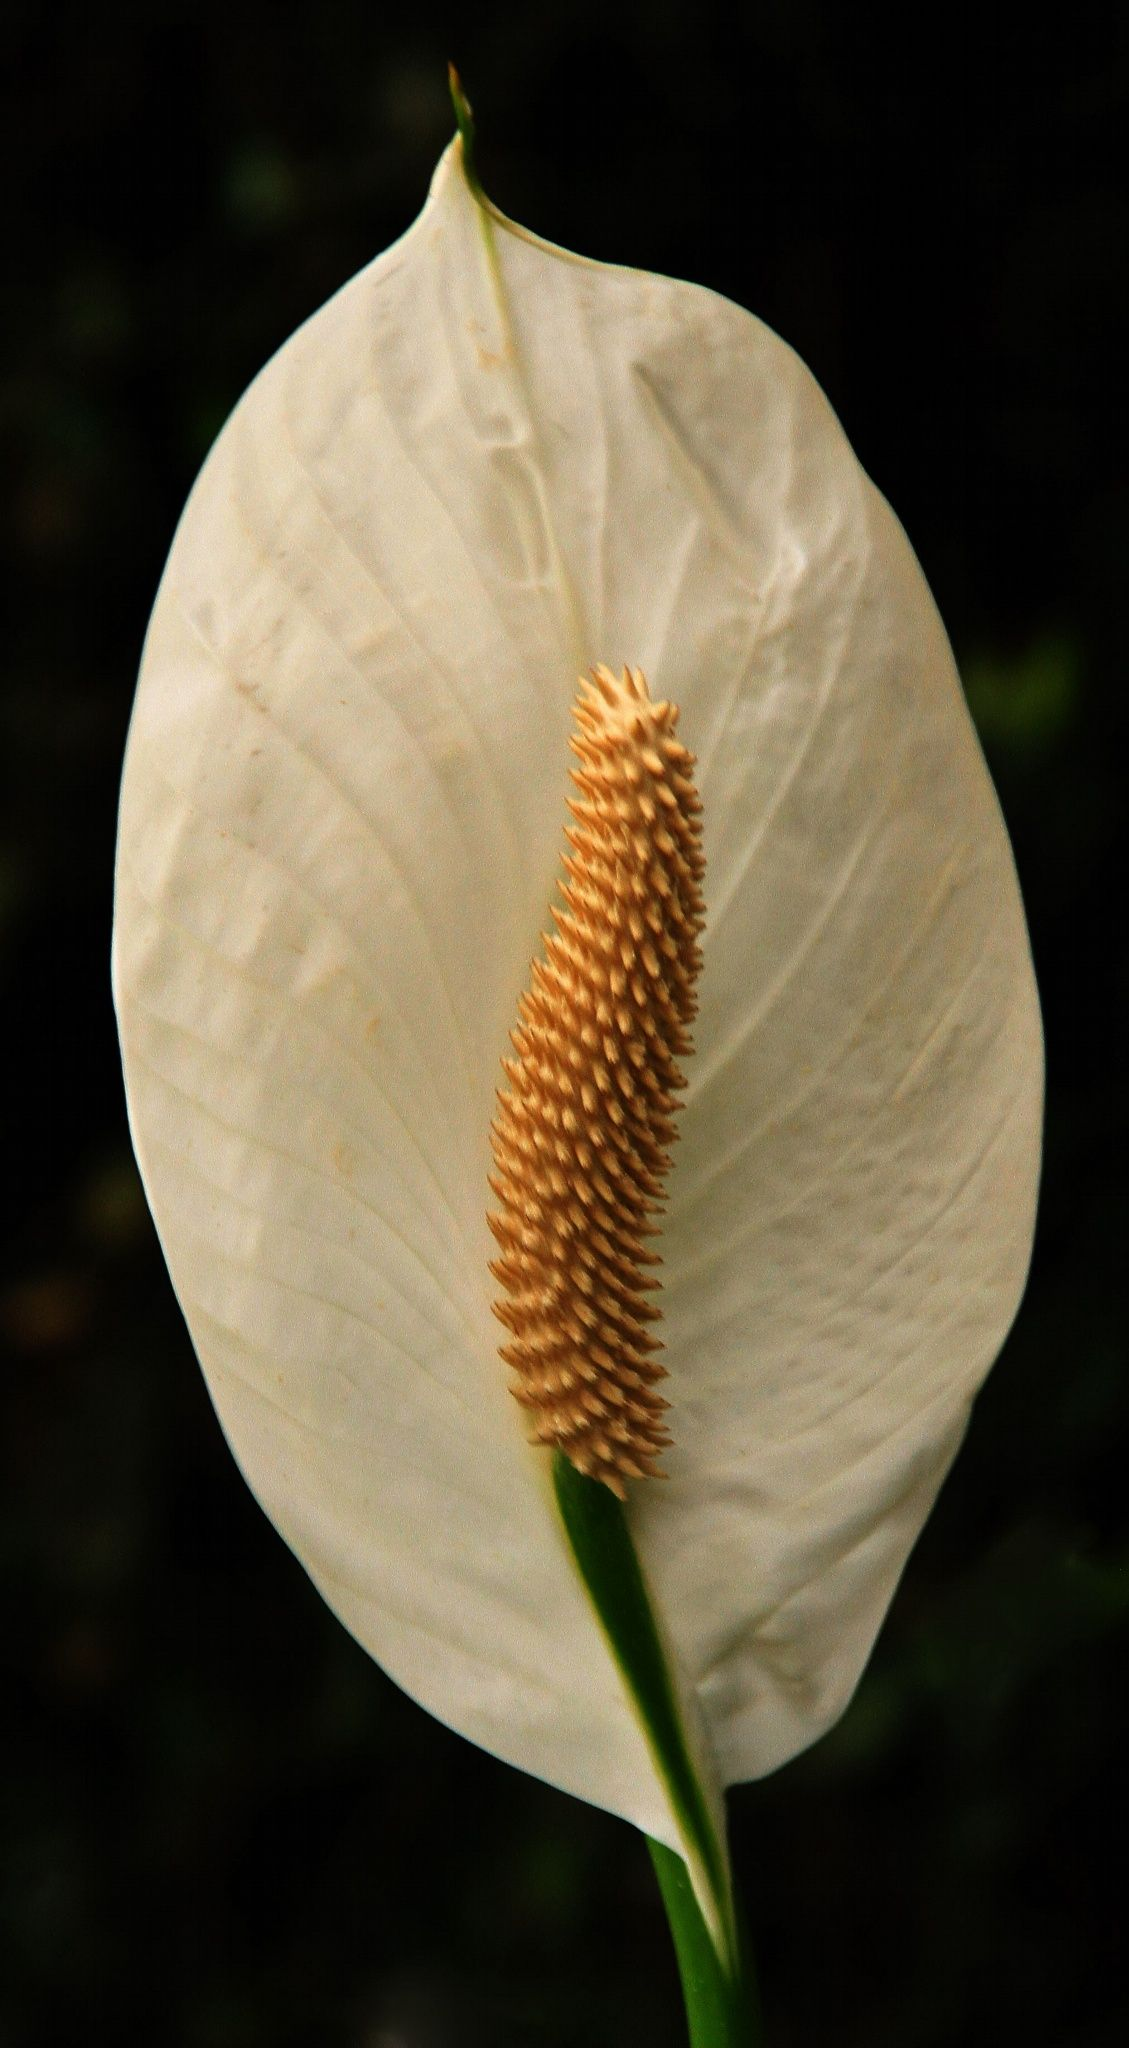 Calla lily by rocco cafagna on 500px flowers pinterest calla lily by rocco cafagna on 500px izmirmasajfo